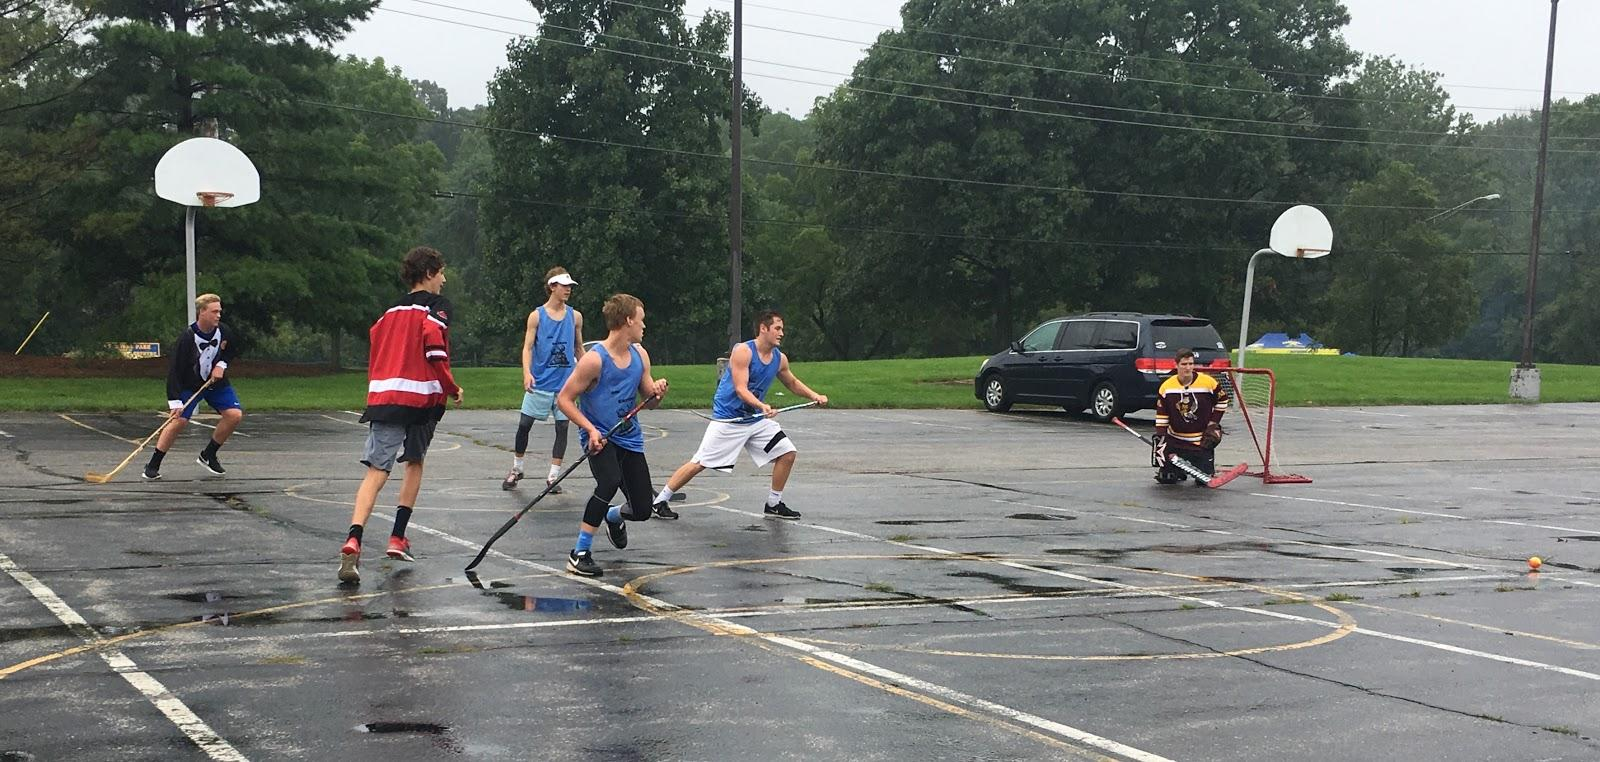 Senior Nathan Zweig is seen playing with other members of GISHL in the parking lot next to the stadium. GISHL had many scrimmages and will continue their season.